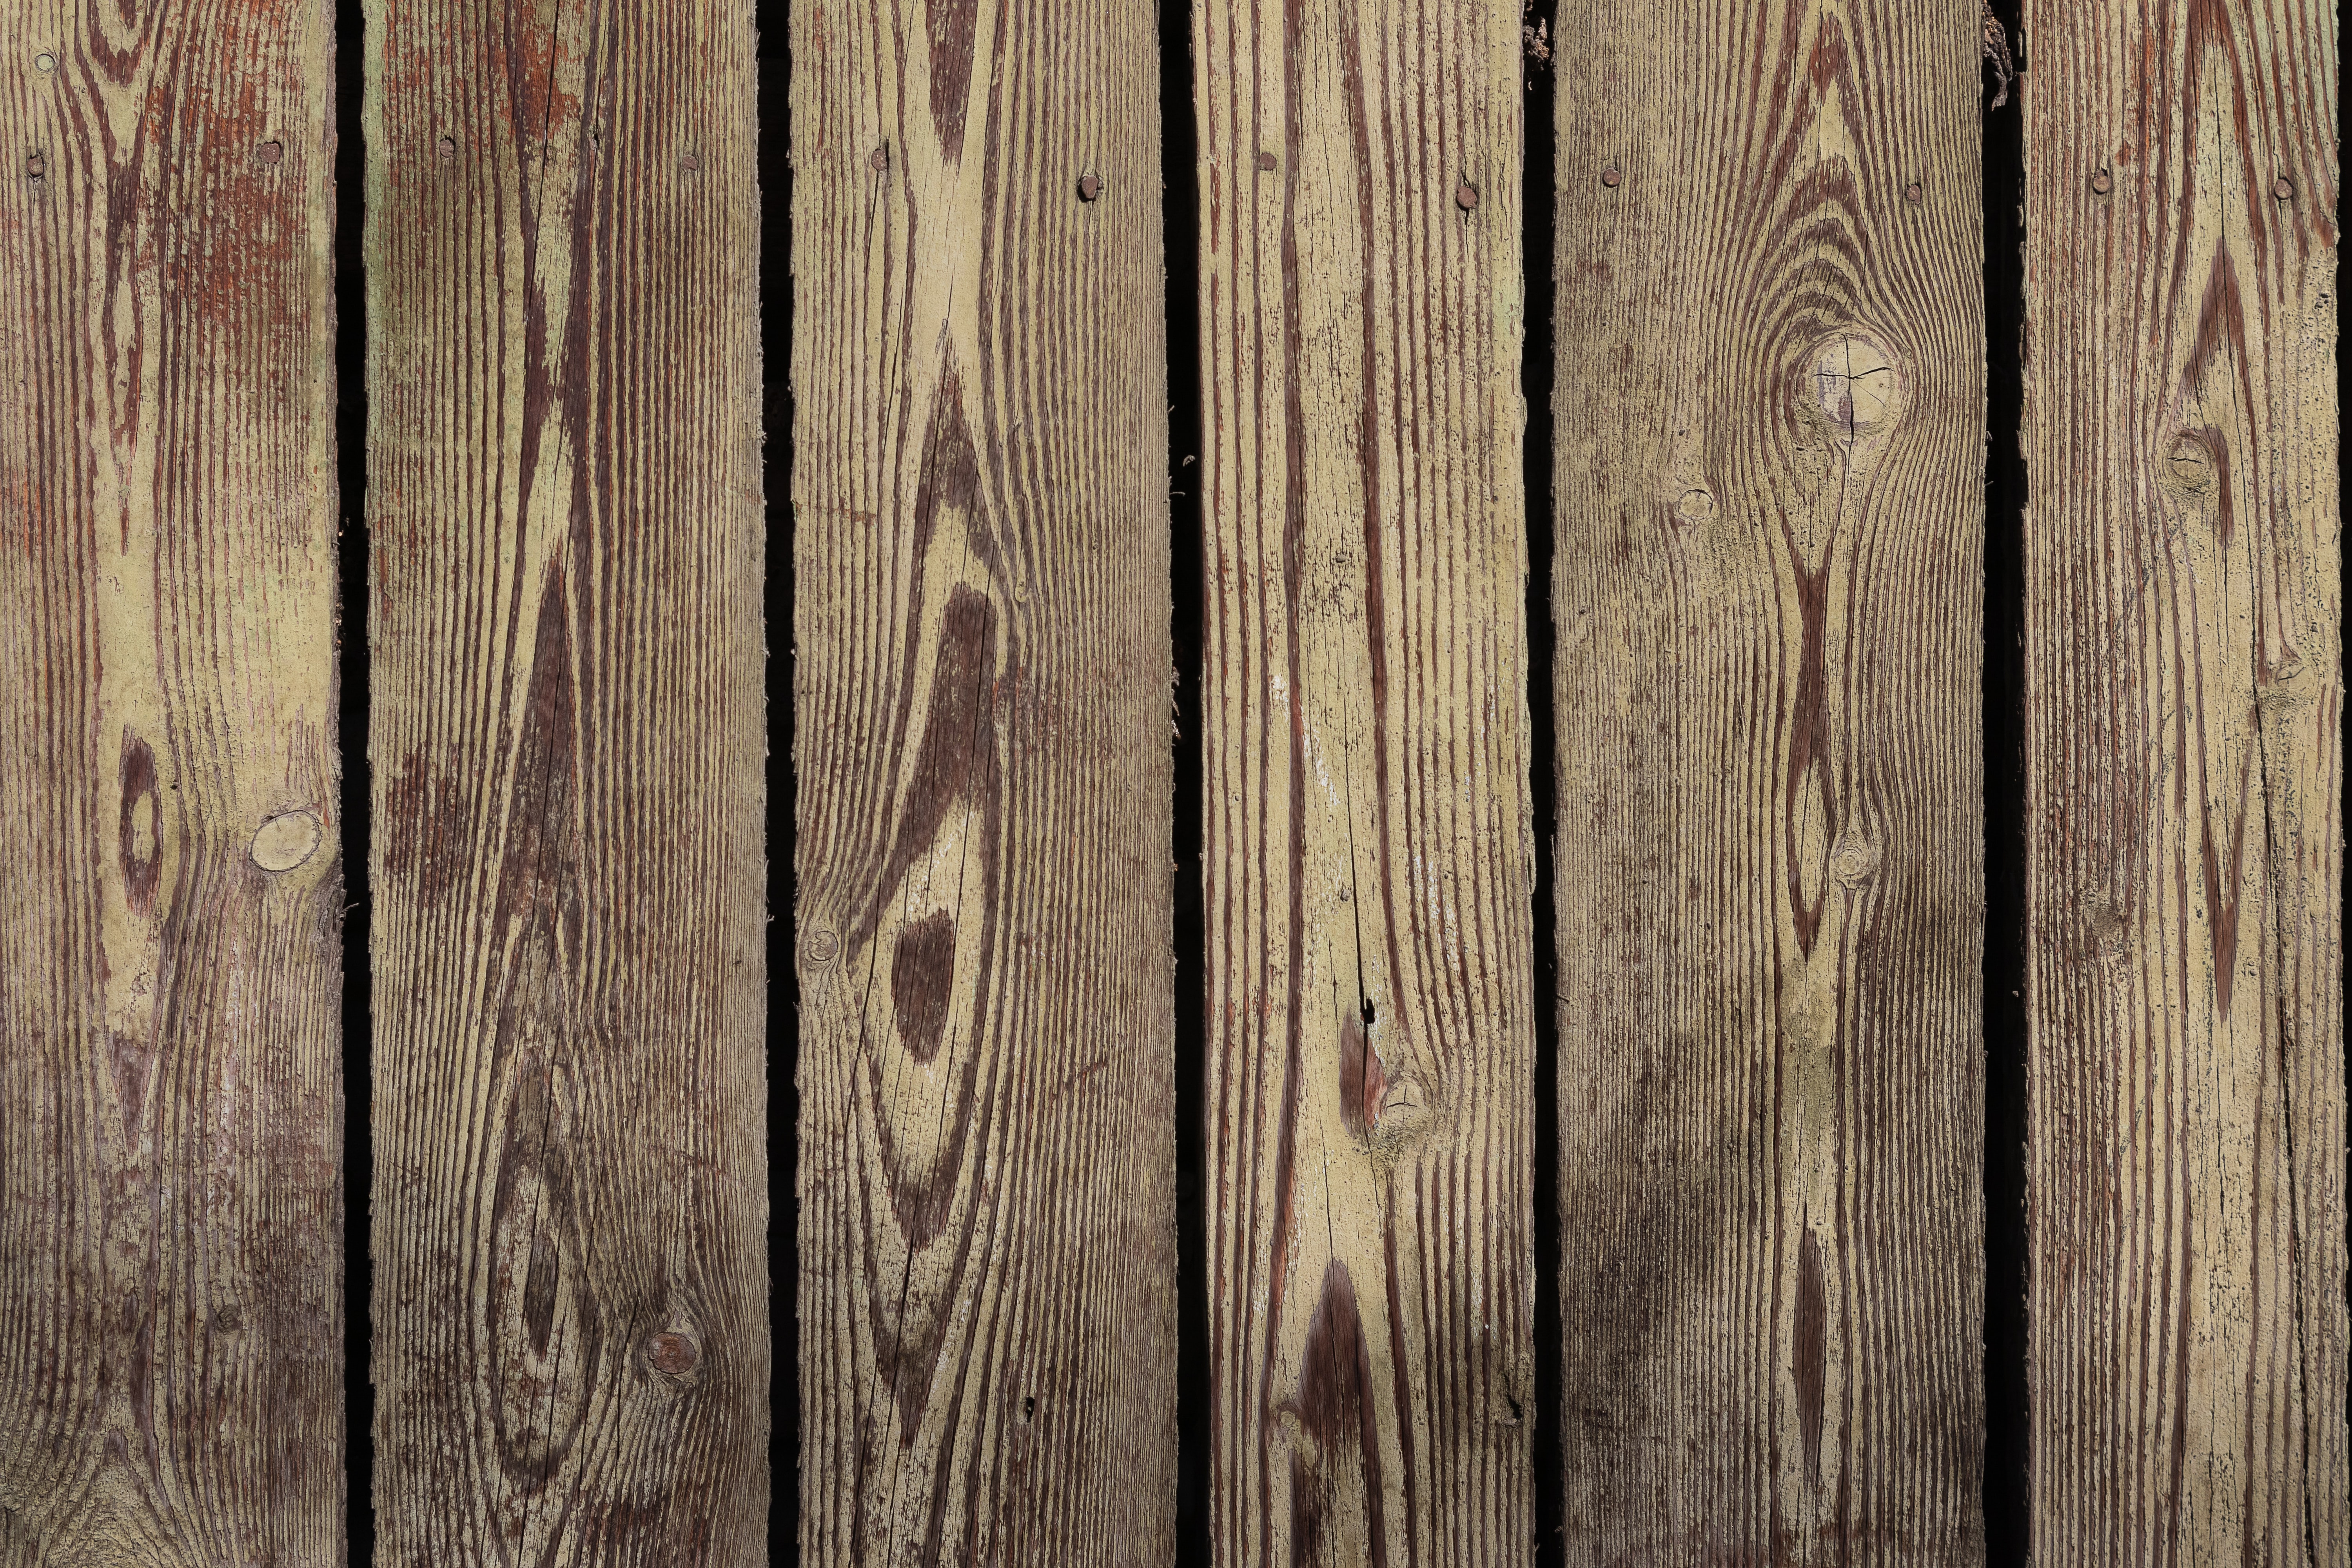 79714 download wallpaper Textures, Texture, Planks, Board, Wood, Wooden, Surface screensavers and pictures for free